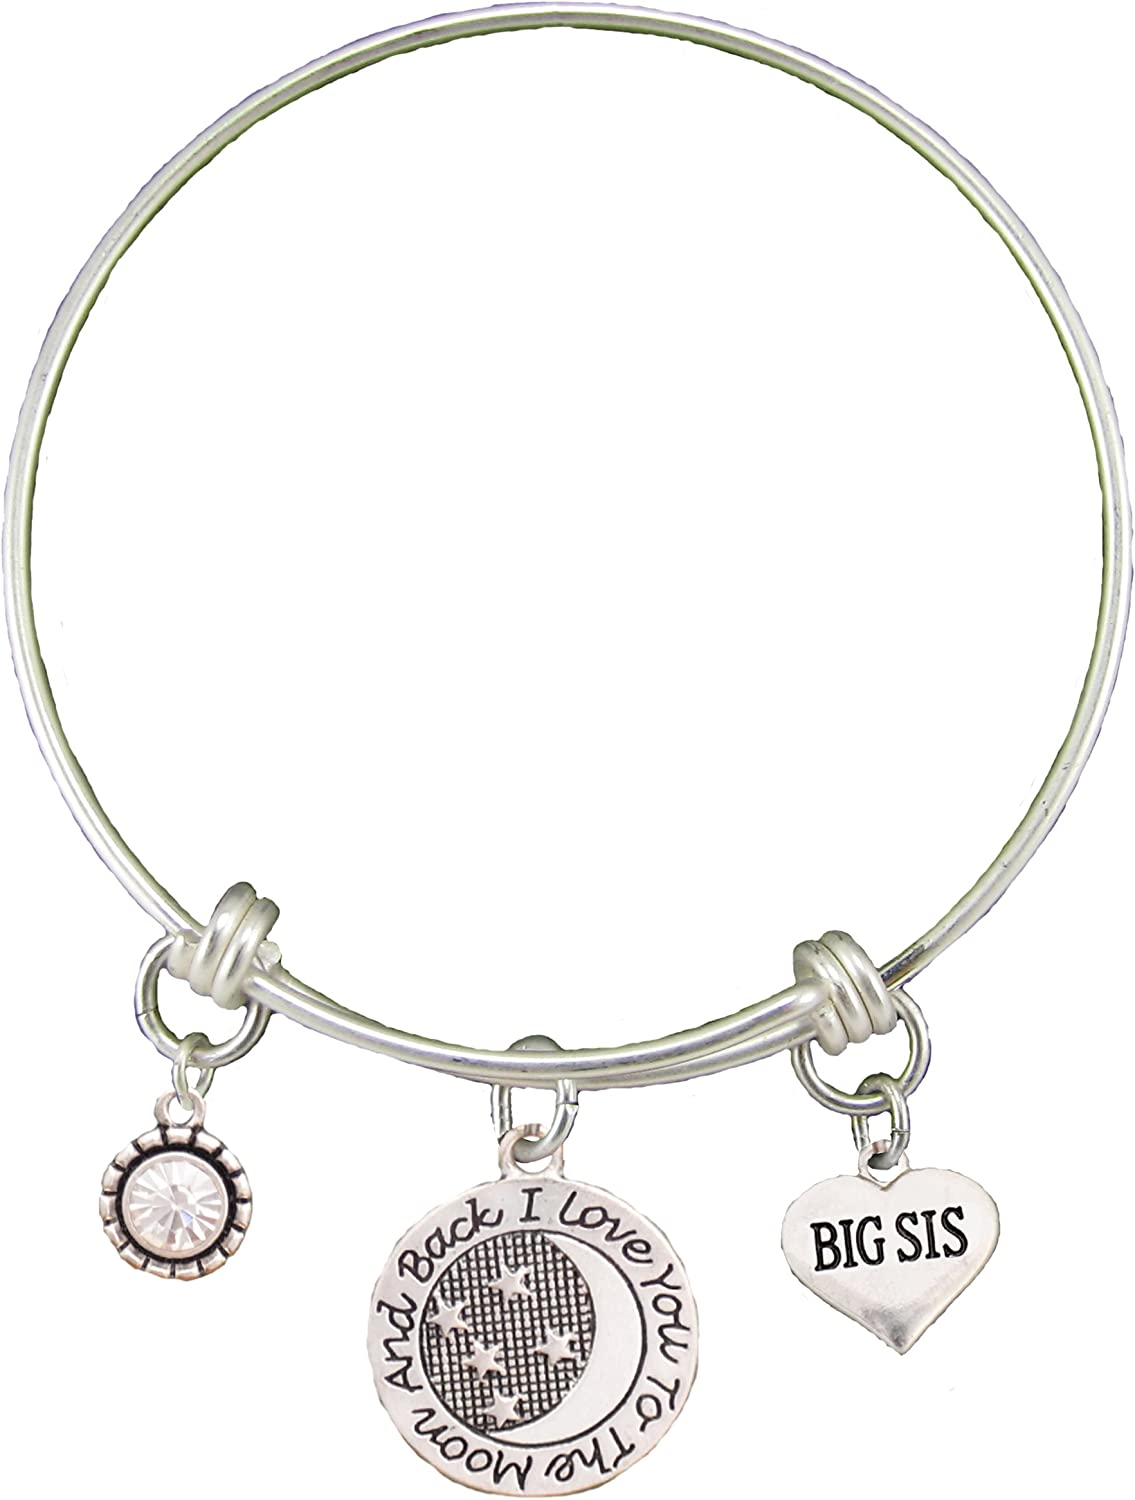 Sale item Big Sis Love You To The Great interest Wire Silver Adjustable Bracelet Moon